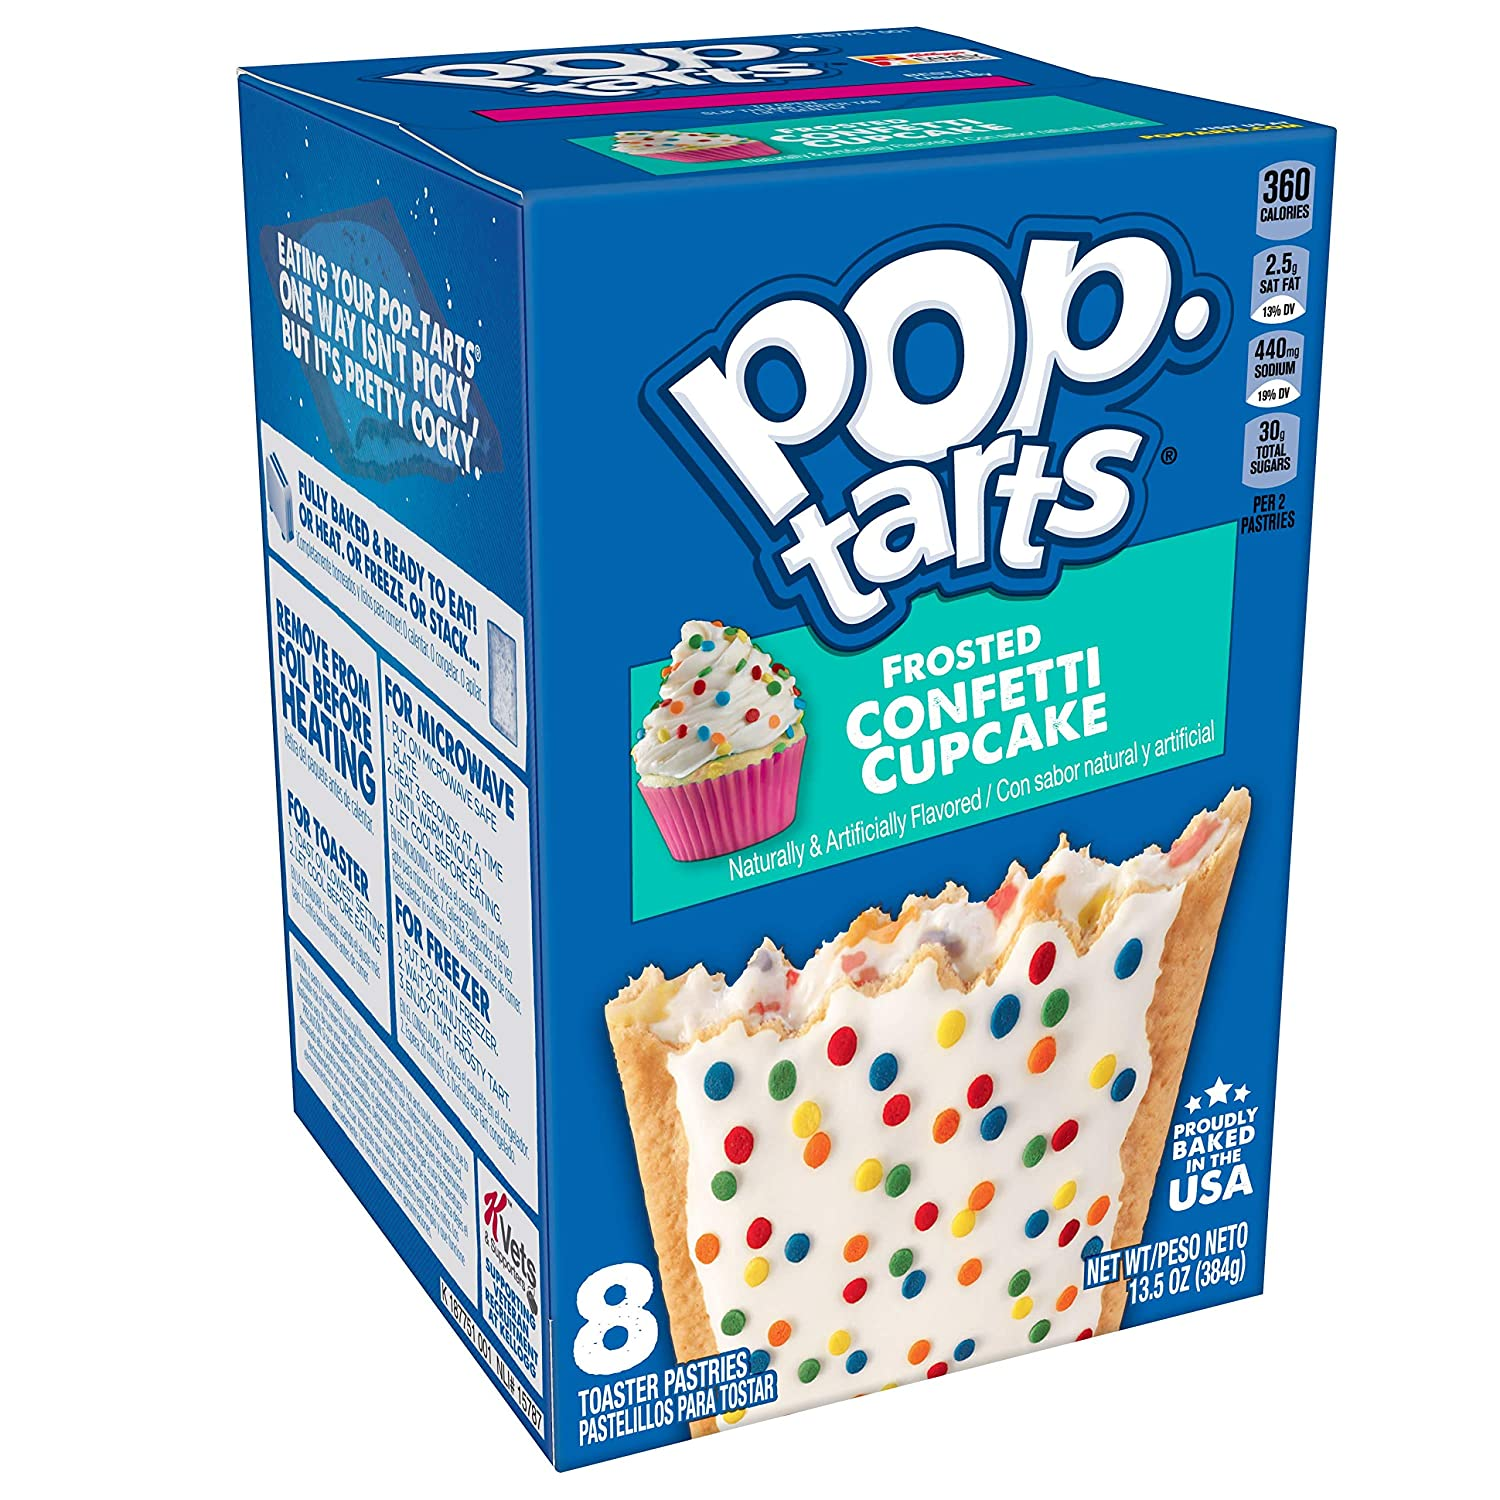 Pop-Tarts, Breakfast Toaster Pastries, Frosted Confetti Cupcake, Proudly Baked in the USA, 13.5oz Box (Pack of 12)